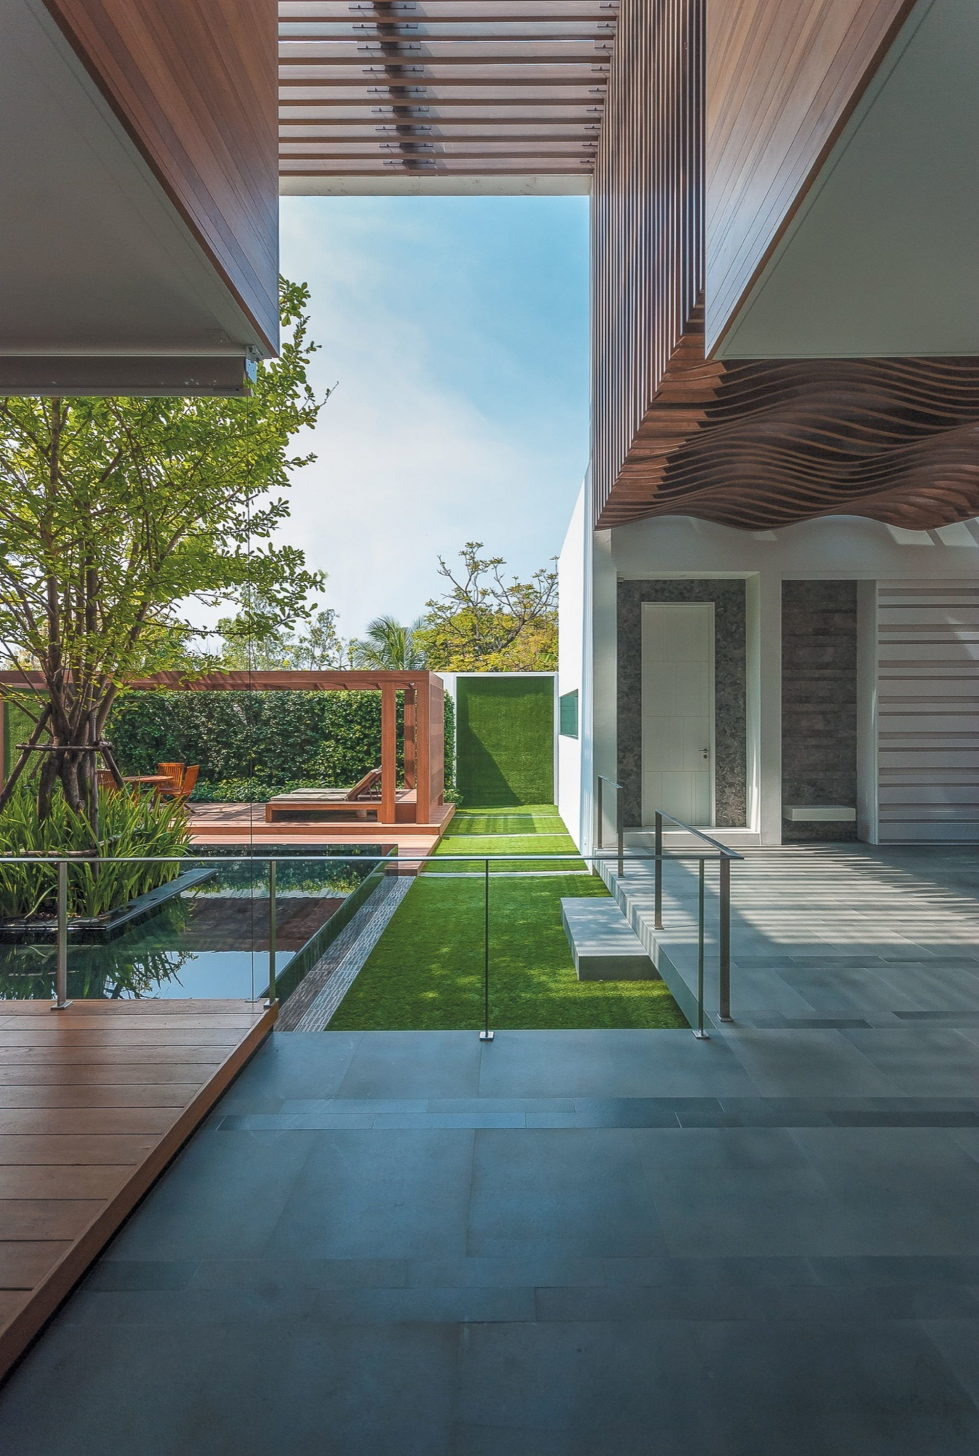 wind-house-combination-of-nature-and-architecture-in-the-thailand-house-8